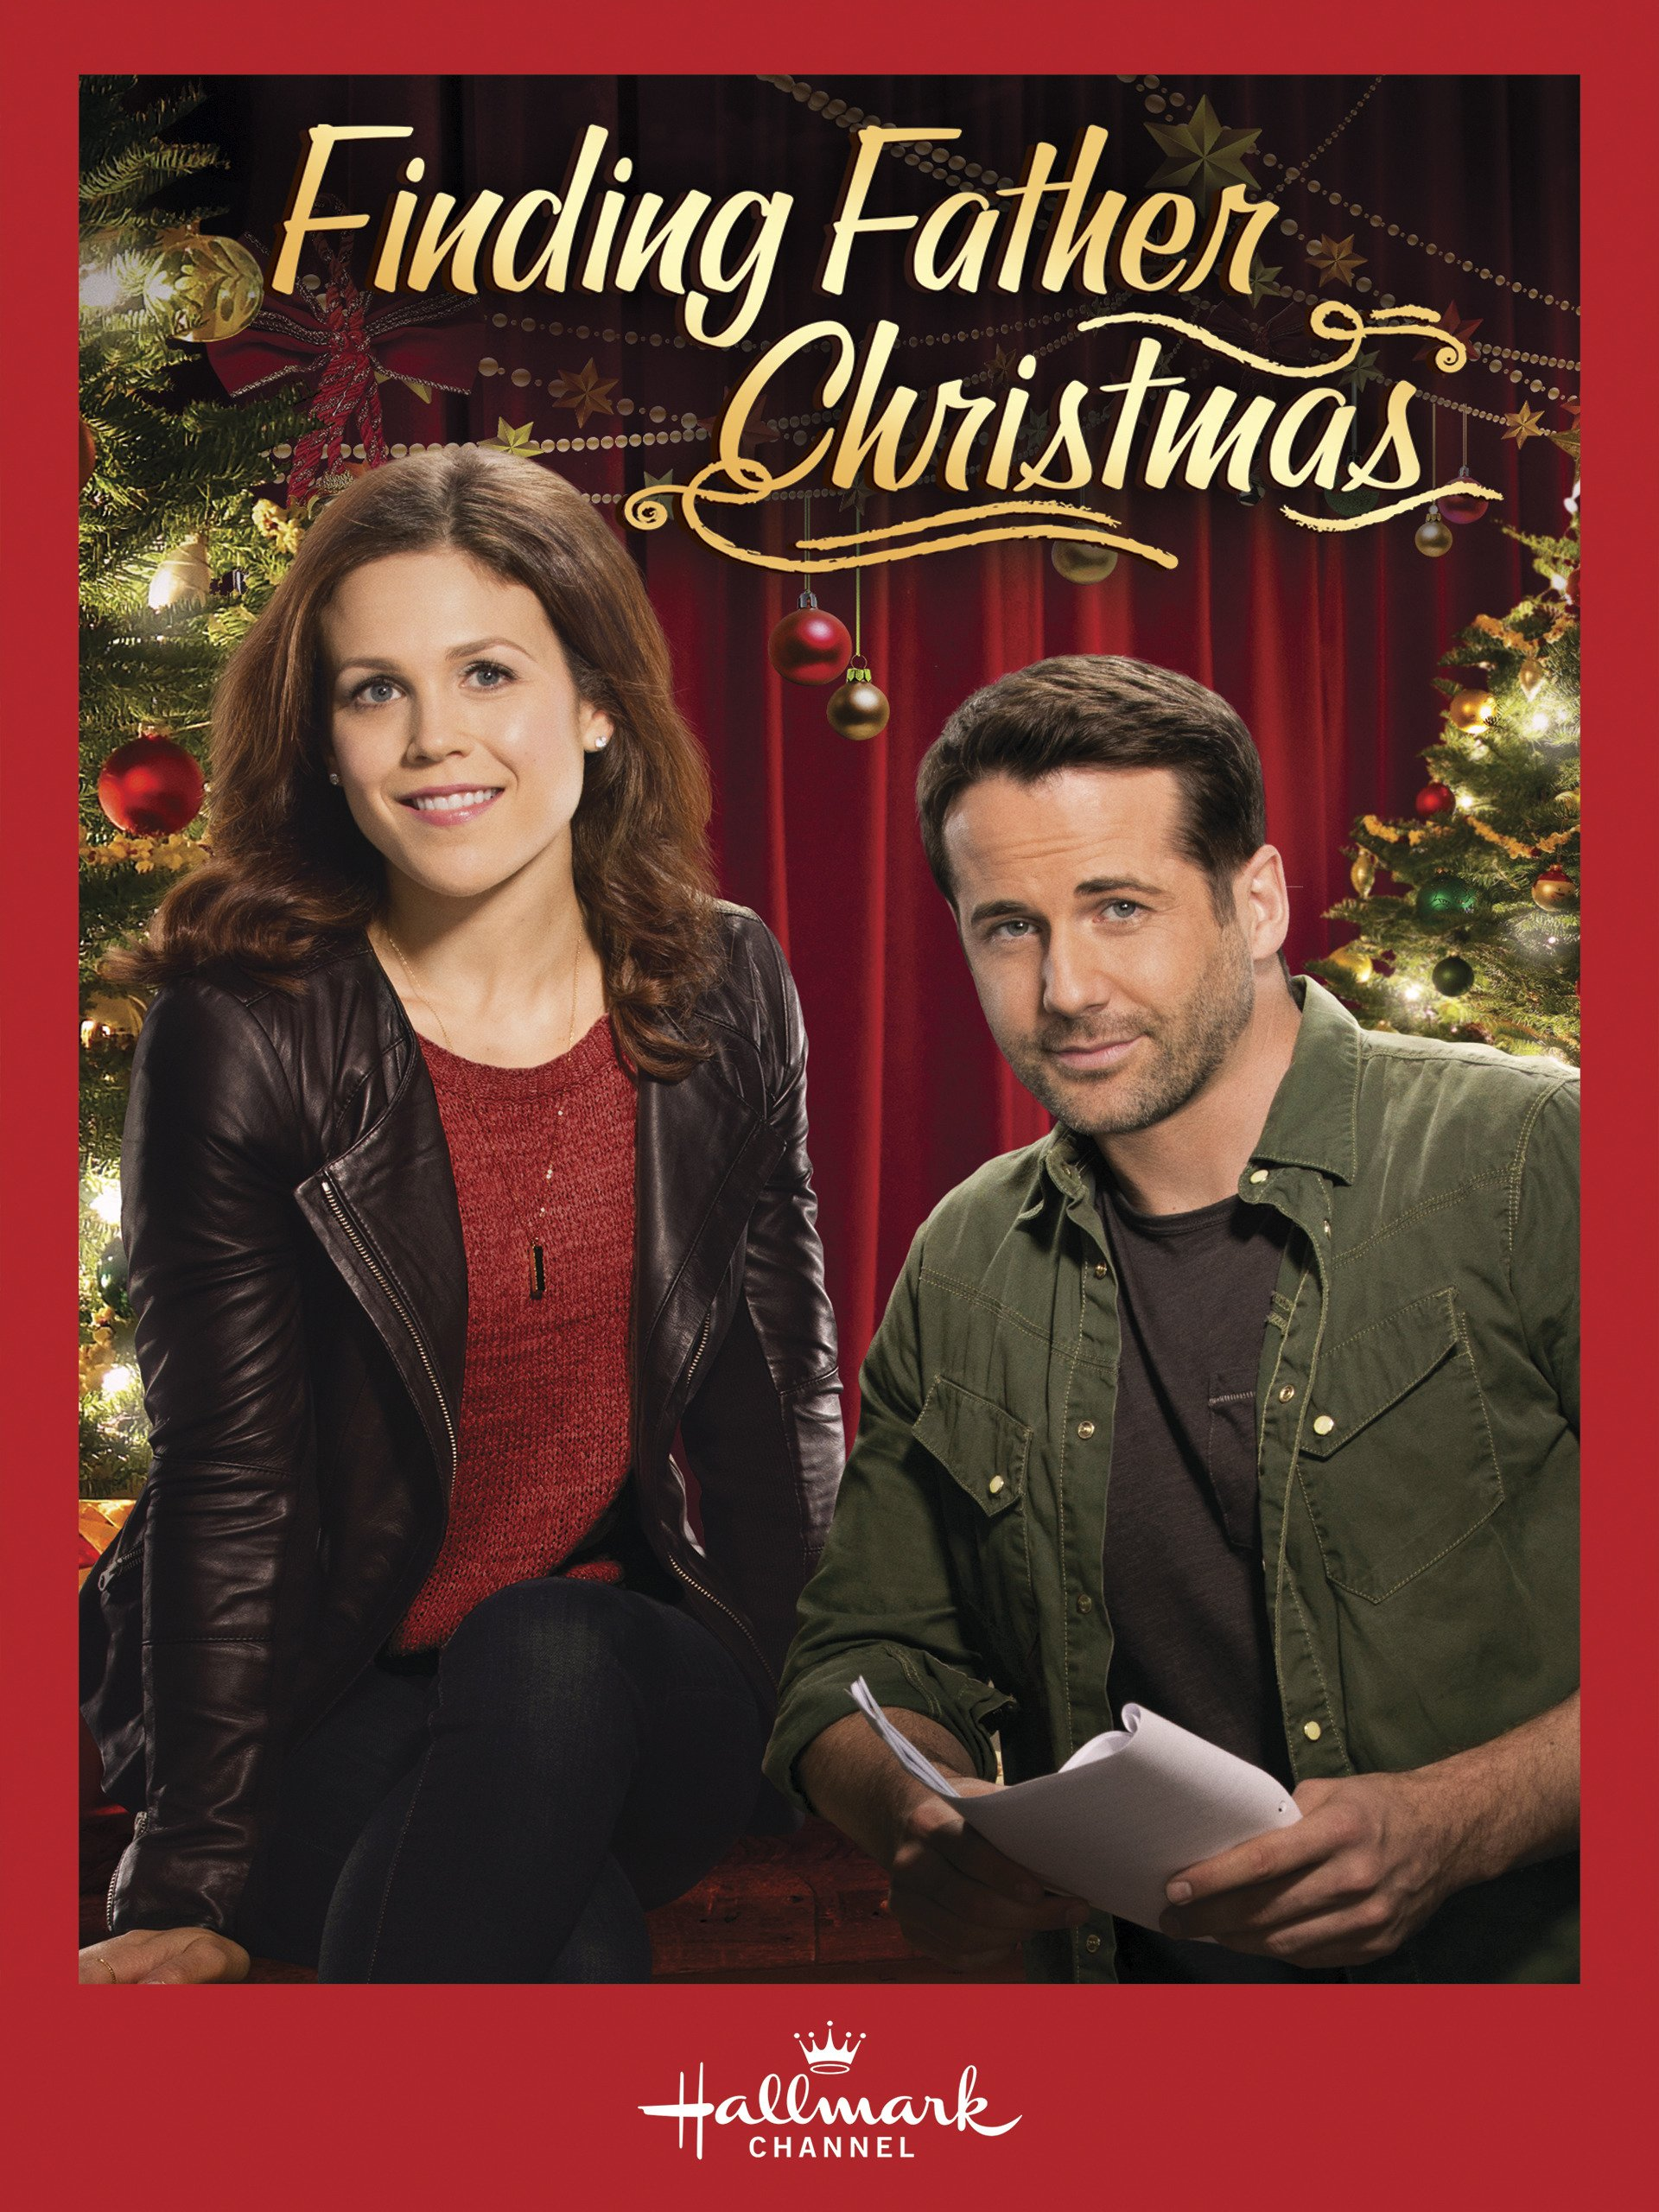 Finding Christmas Cast.Amazon Com Watch Finding Father Christmas Prime Video